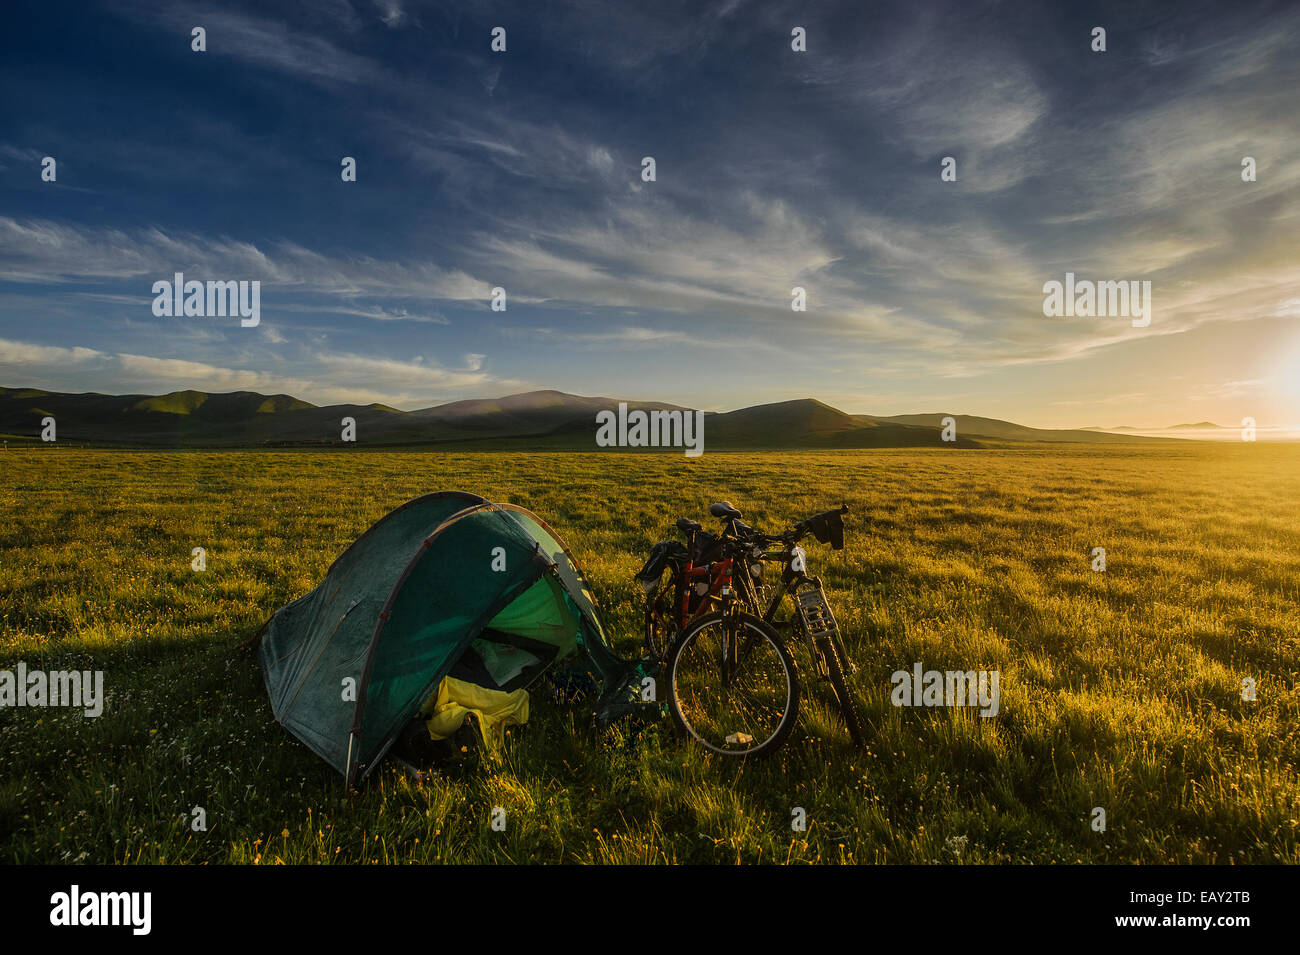 Camping on the grasslands of the Tibetan plateau, Sichuan province, China - Stock Image